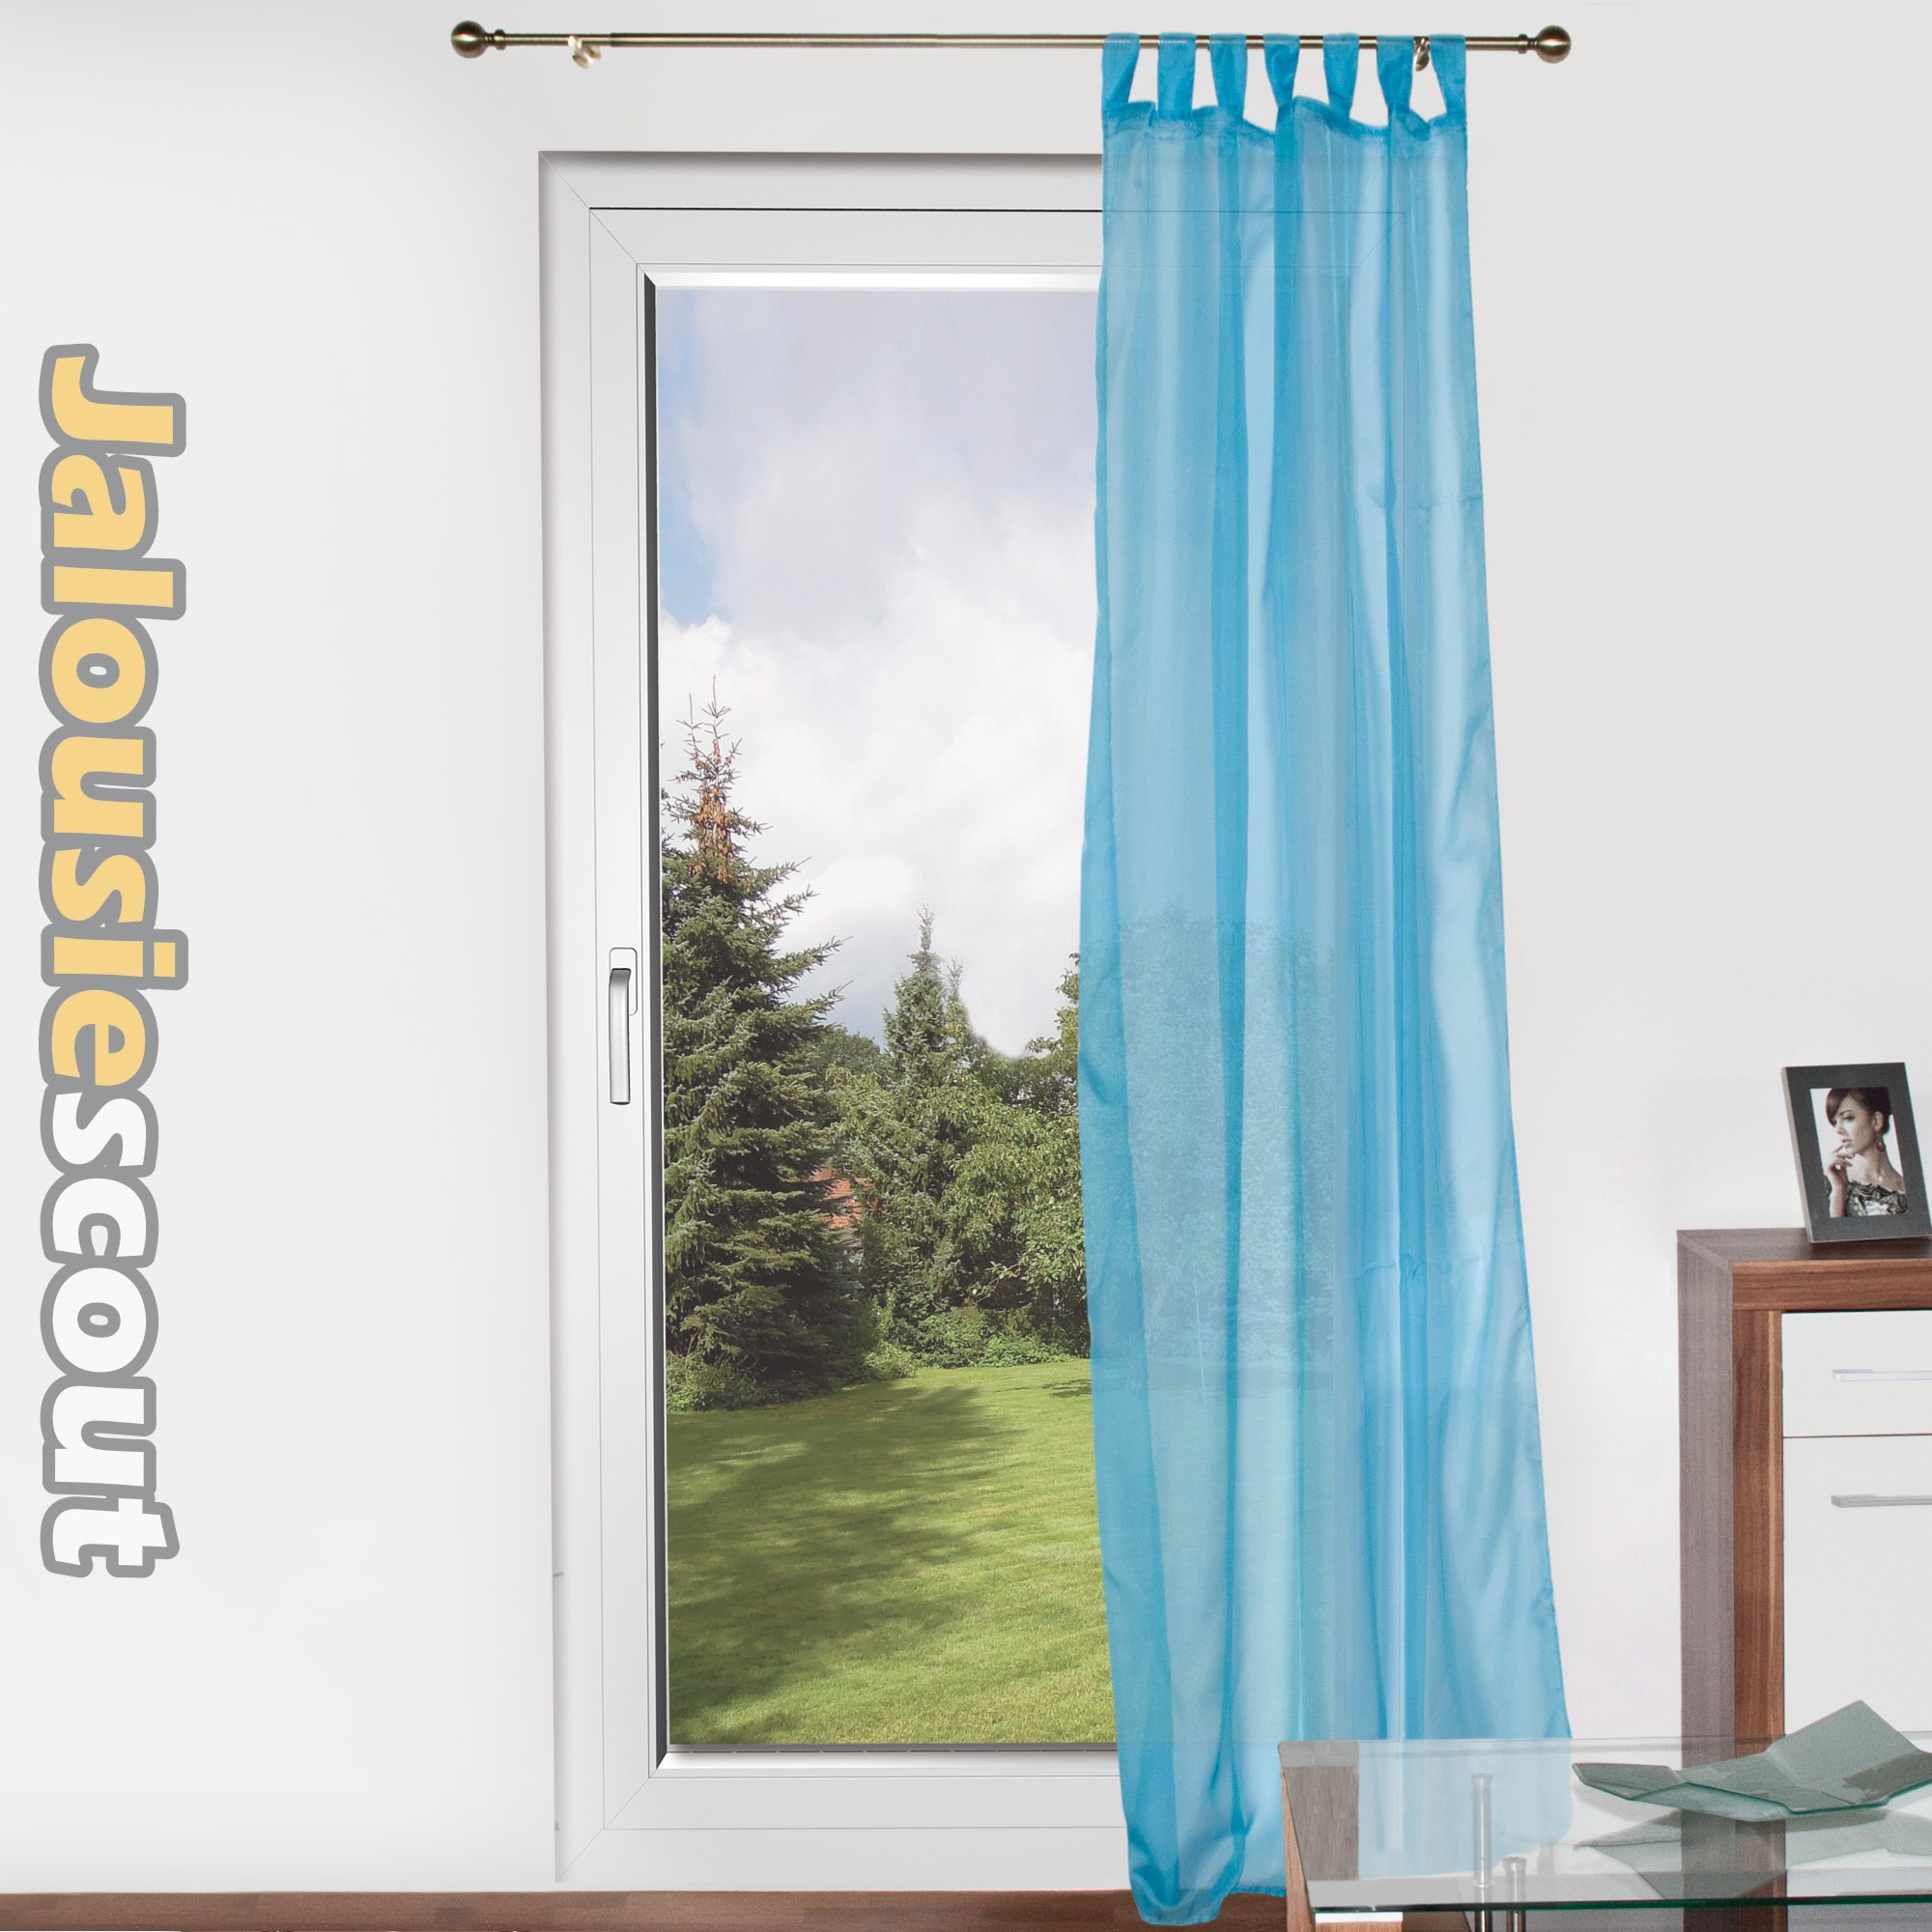 fenster schlaufenschal vorhang taft vorhang gardine dekoschal transparent voile. Black Bedroom Furniture Sets. Home Design Ideas